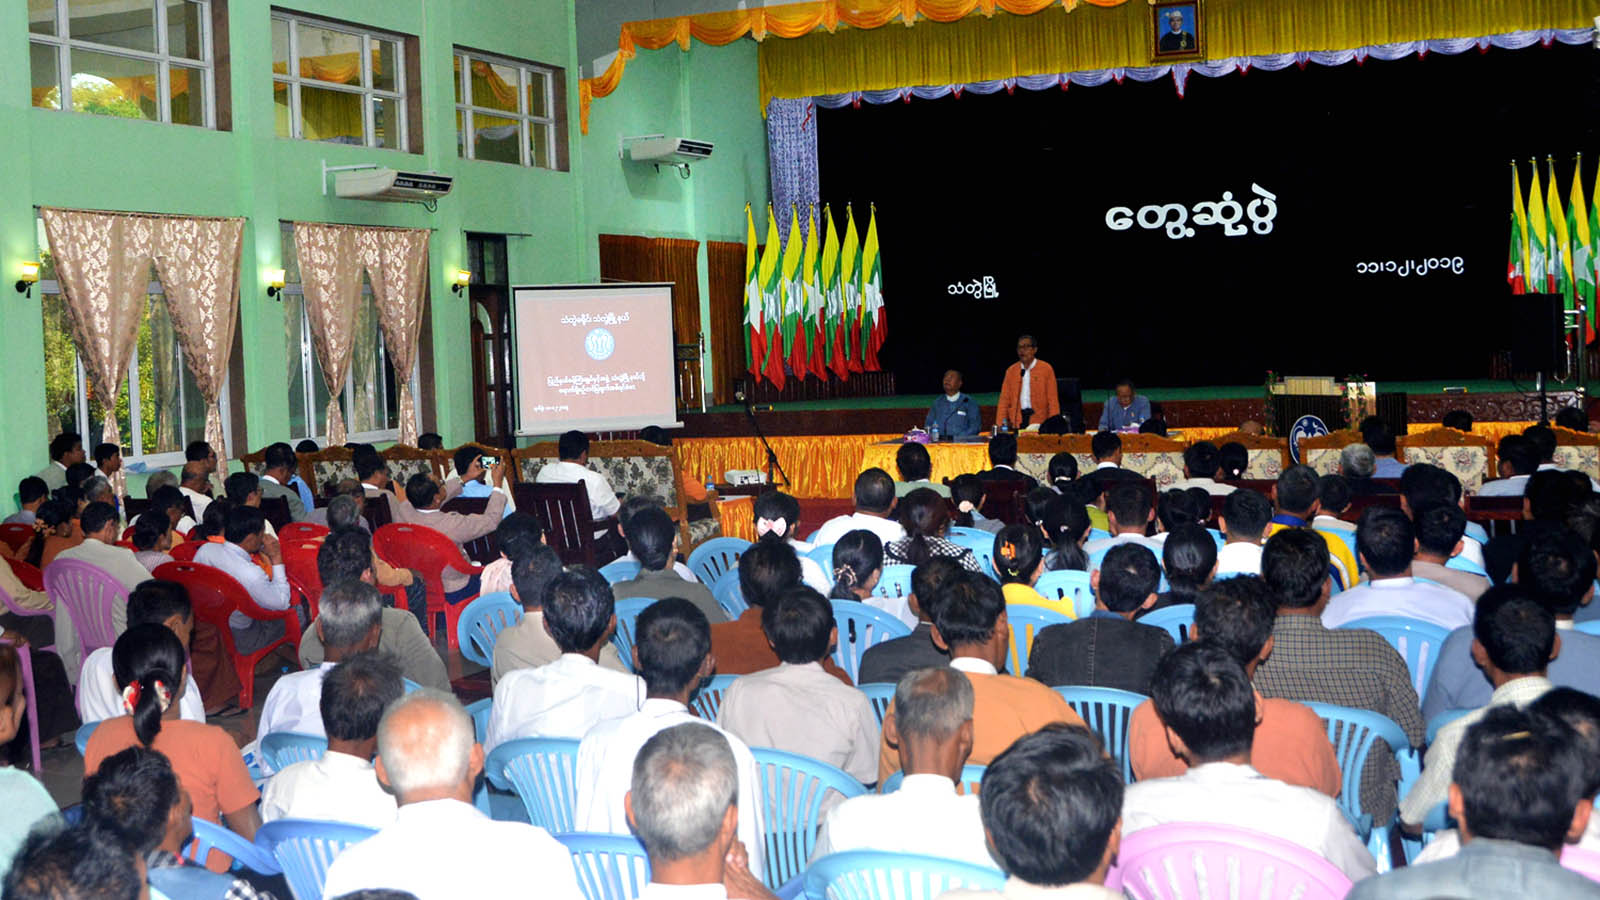 Rakhine State Chief Minister U Nyi Pu delivers the speech during the meeting with locals at Dwarawati Hall in Thandwe Township, Rakhine State, yesterday. Photo: MNA